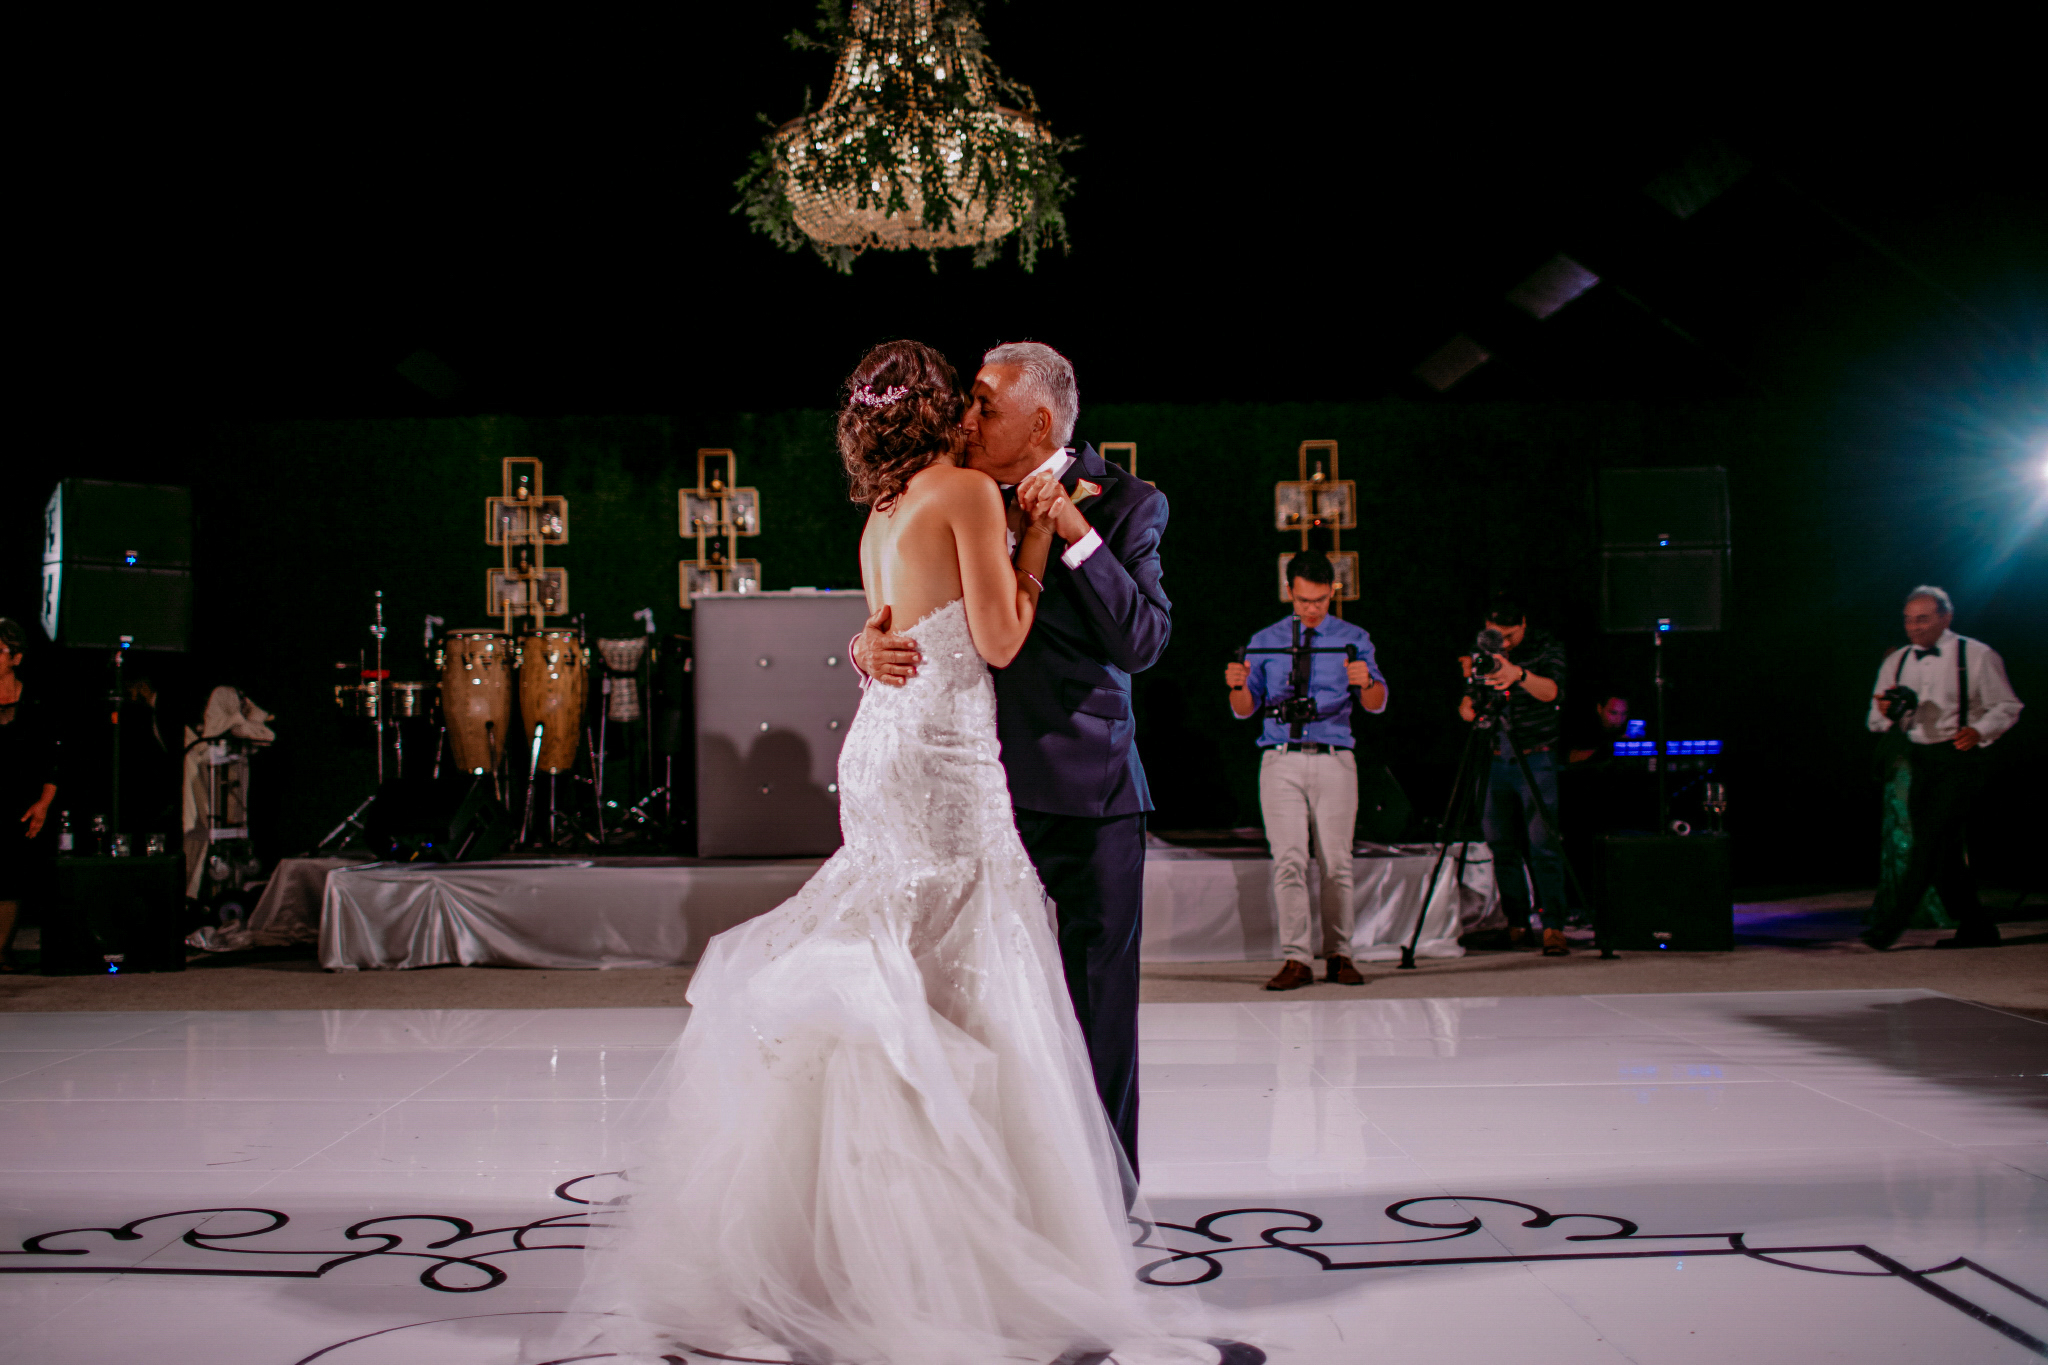 san diego wedding   photographer | bride dances with her father in the middle of the dance   floor